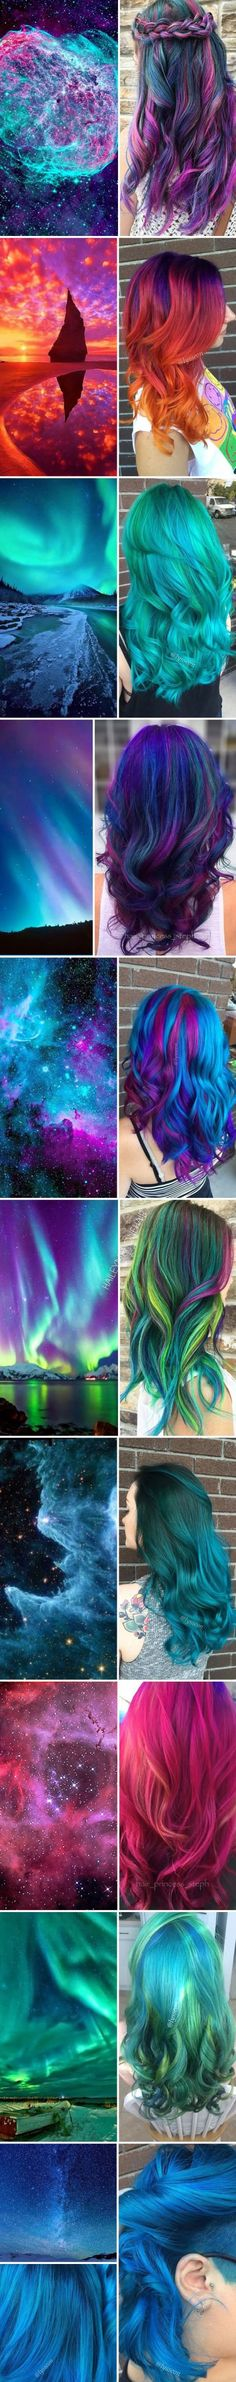 Galaxy hair- various different styles of galaxy hair. I love the pastel and…